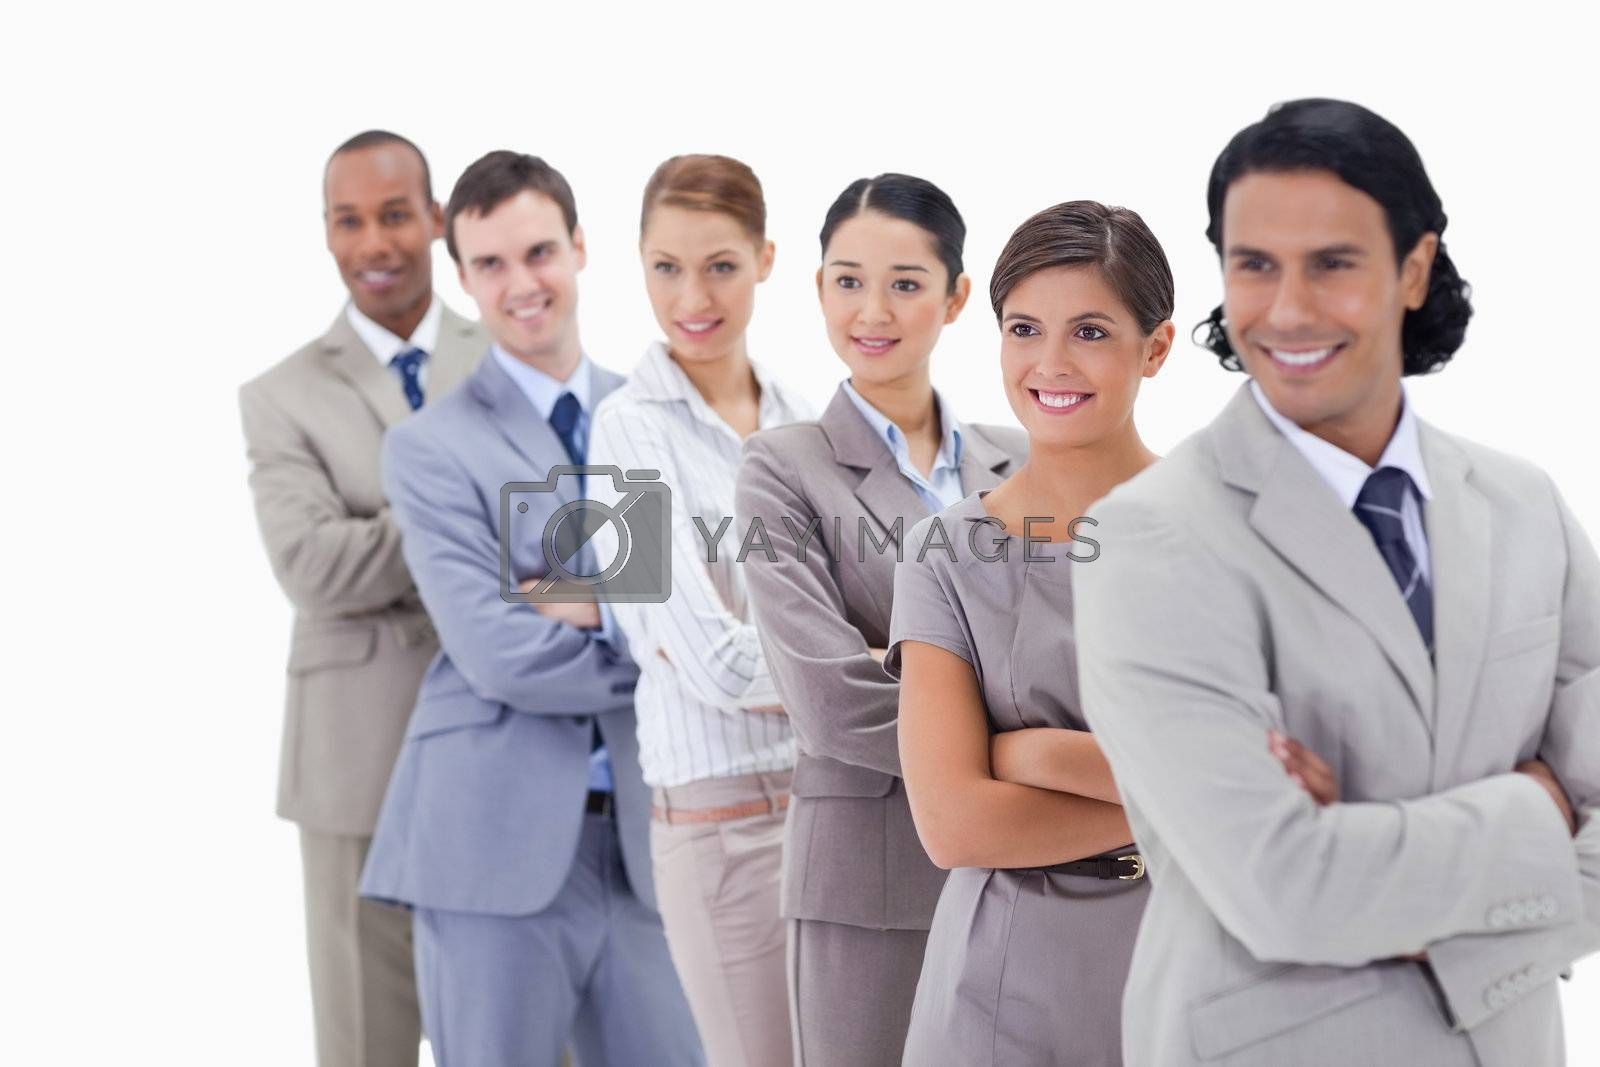 Close-up of a business team smiling in a single line looking towards the left side with focus on the first woman